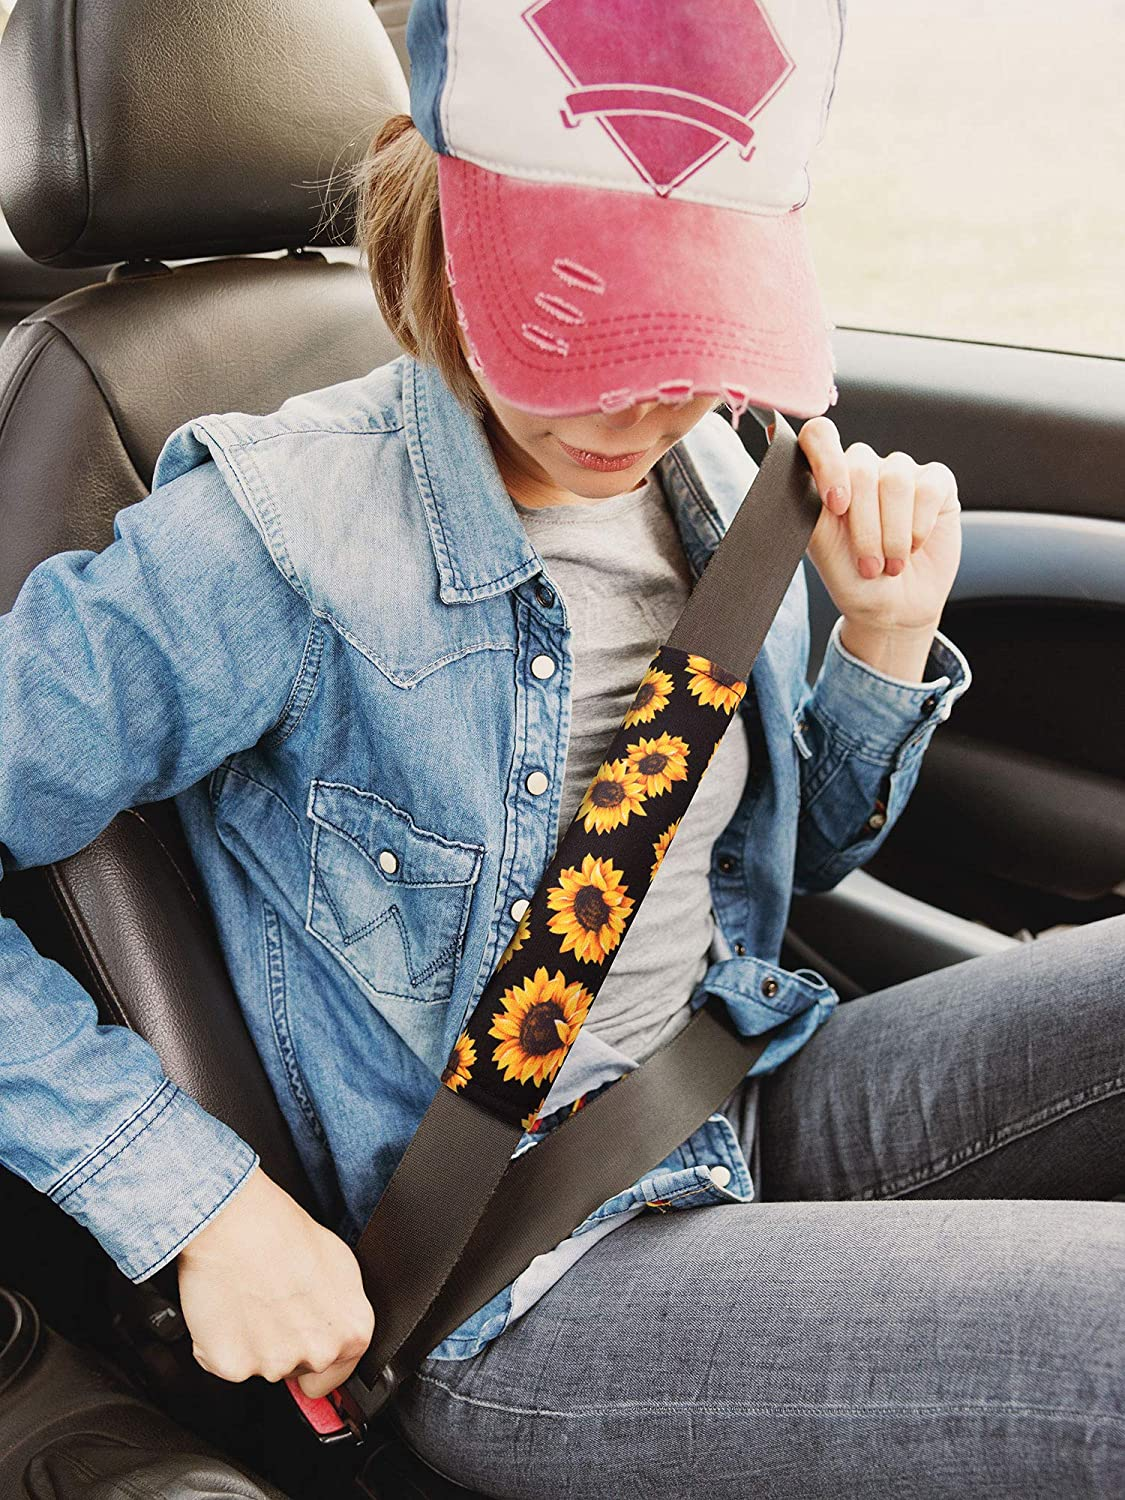 Rear Bench Seat Cover Back Seat Cover Headrest Covers Seat Belt Covers Shoulder Pads for Car Protection Decoration 7 Pieces Sunflower Car Accessories Set